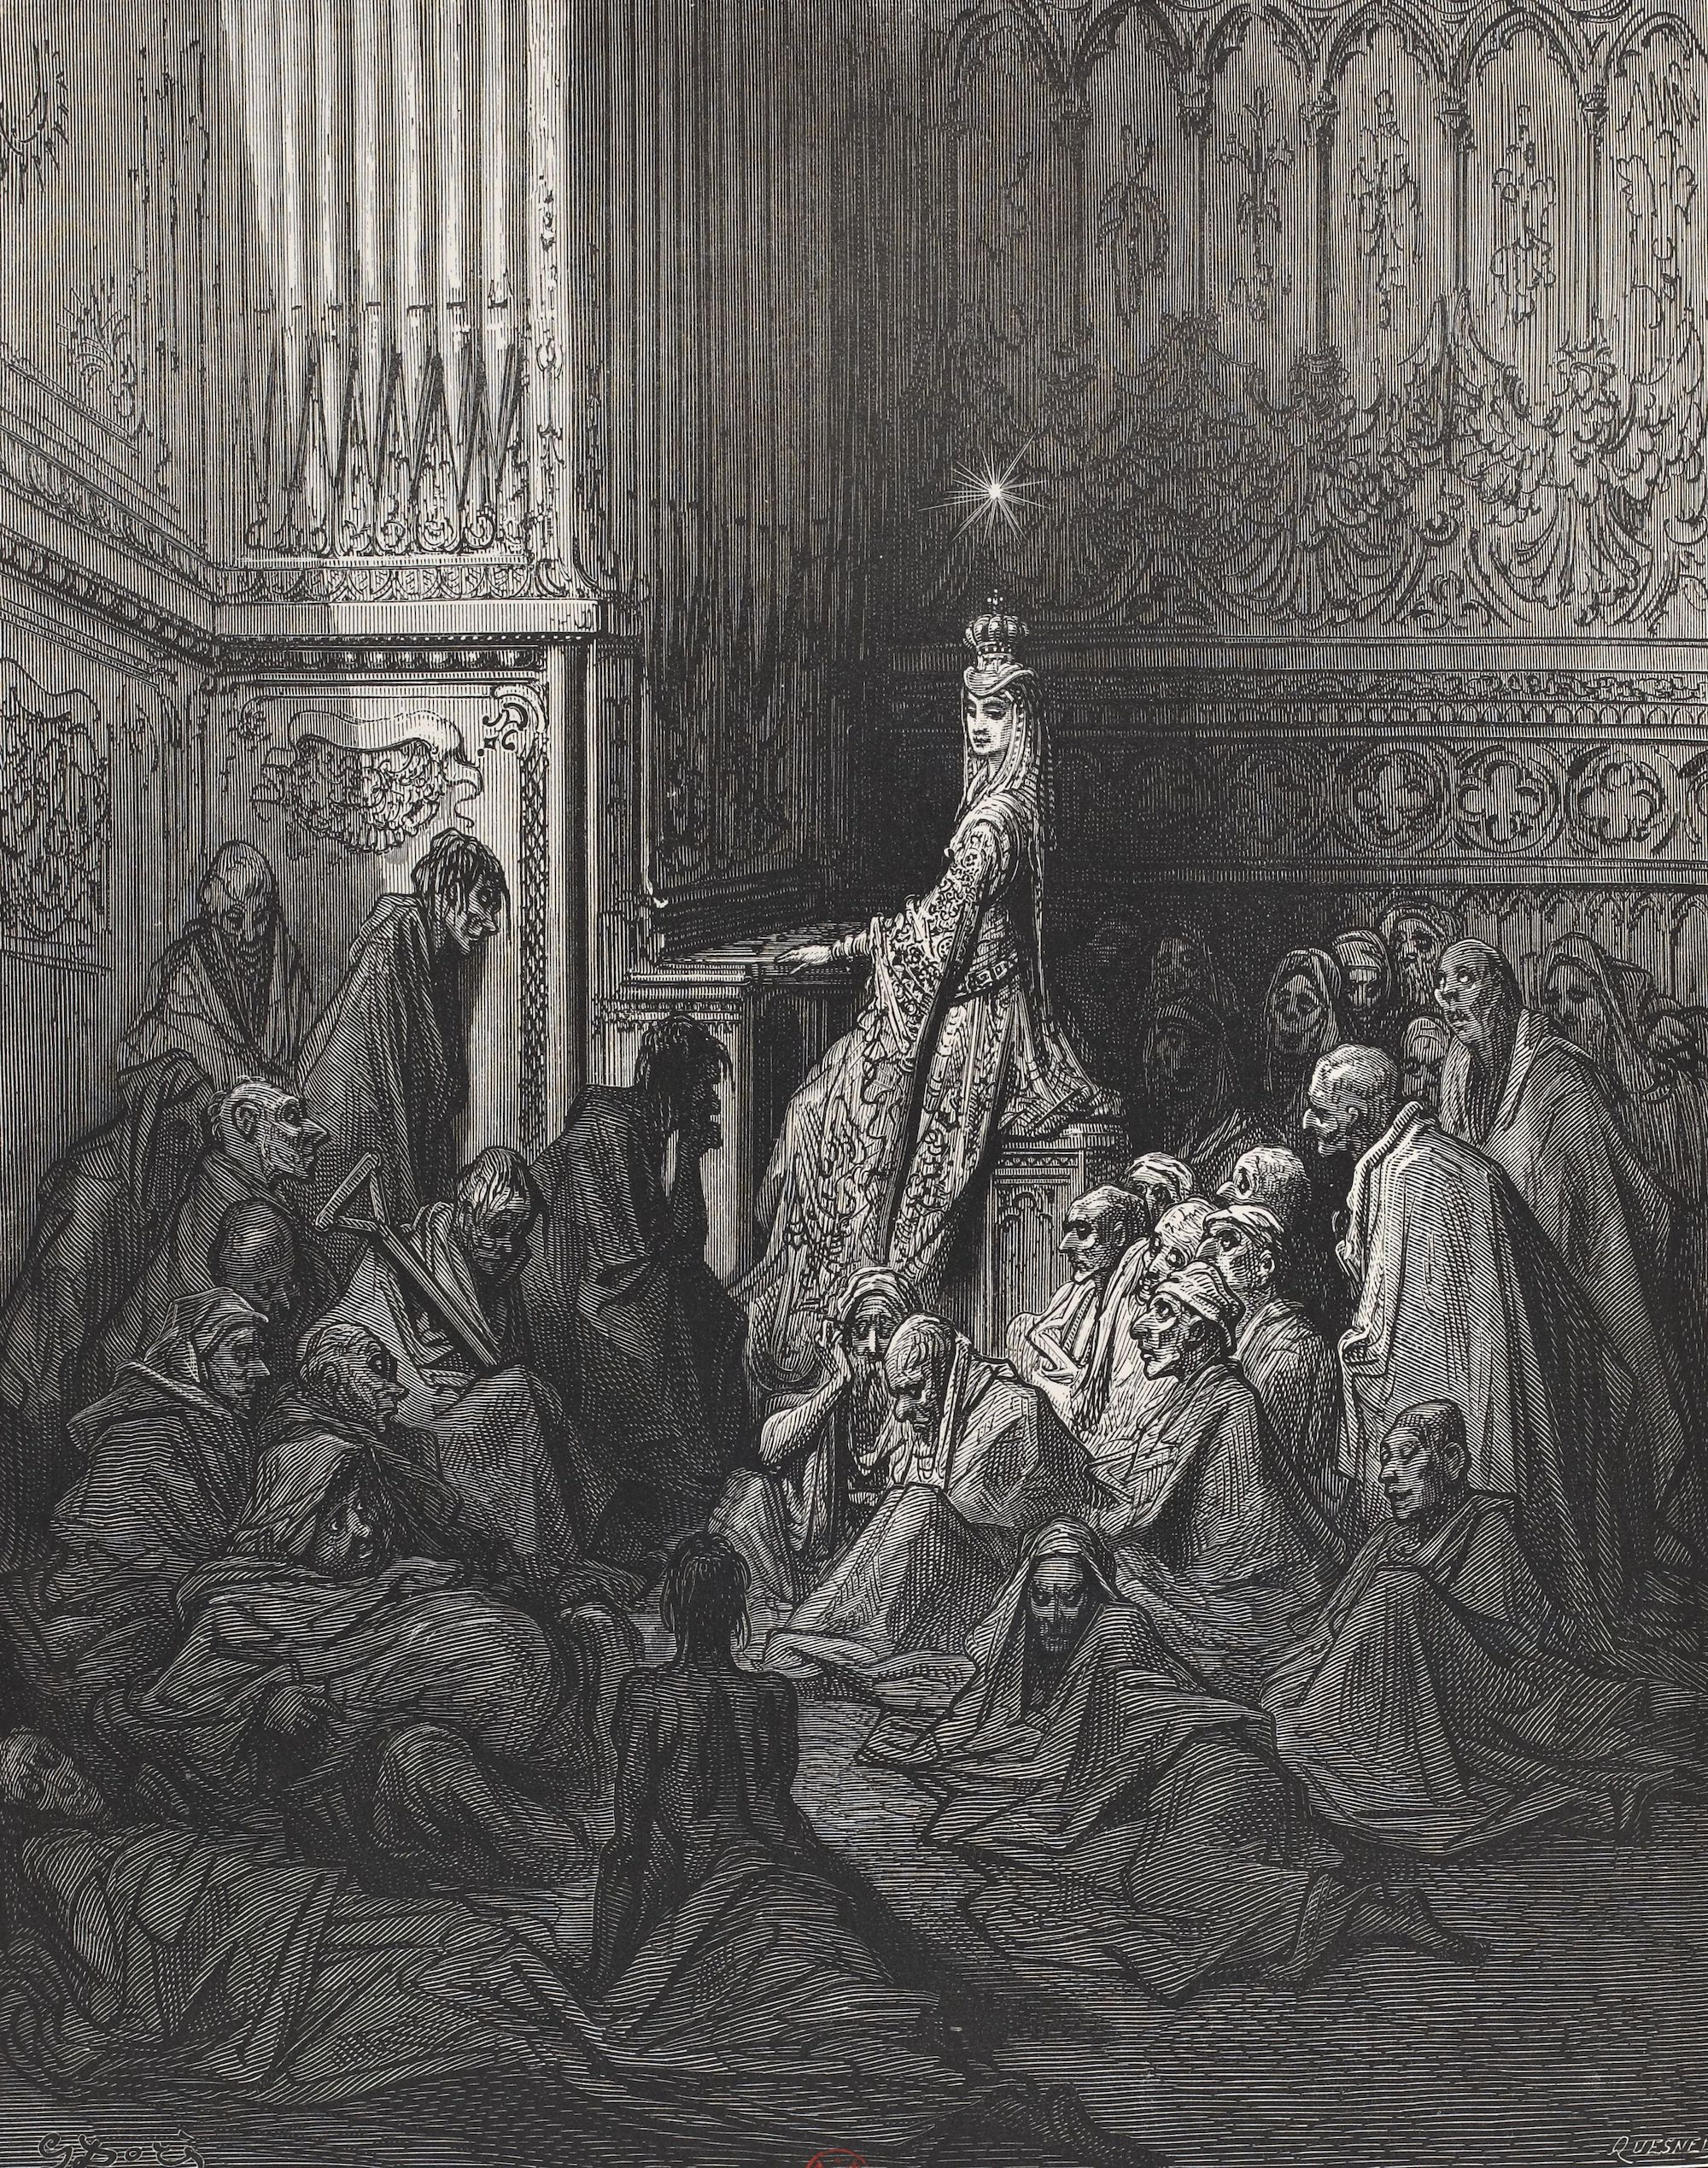 An illustration of Queen Whims playing an organ and curing the sick. A beautiful queen sits an an organ, surrounding by ill people in rags.